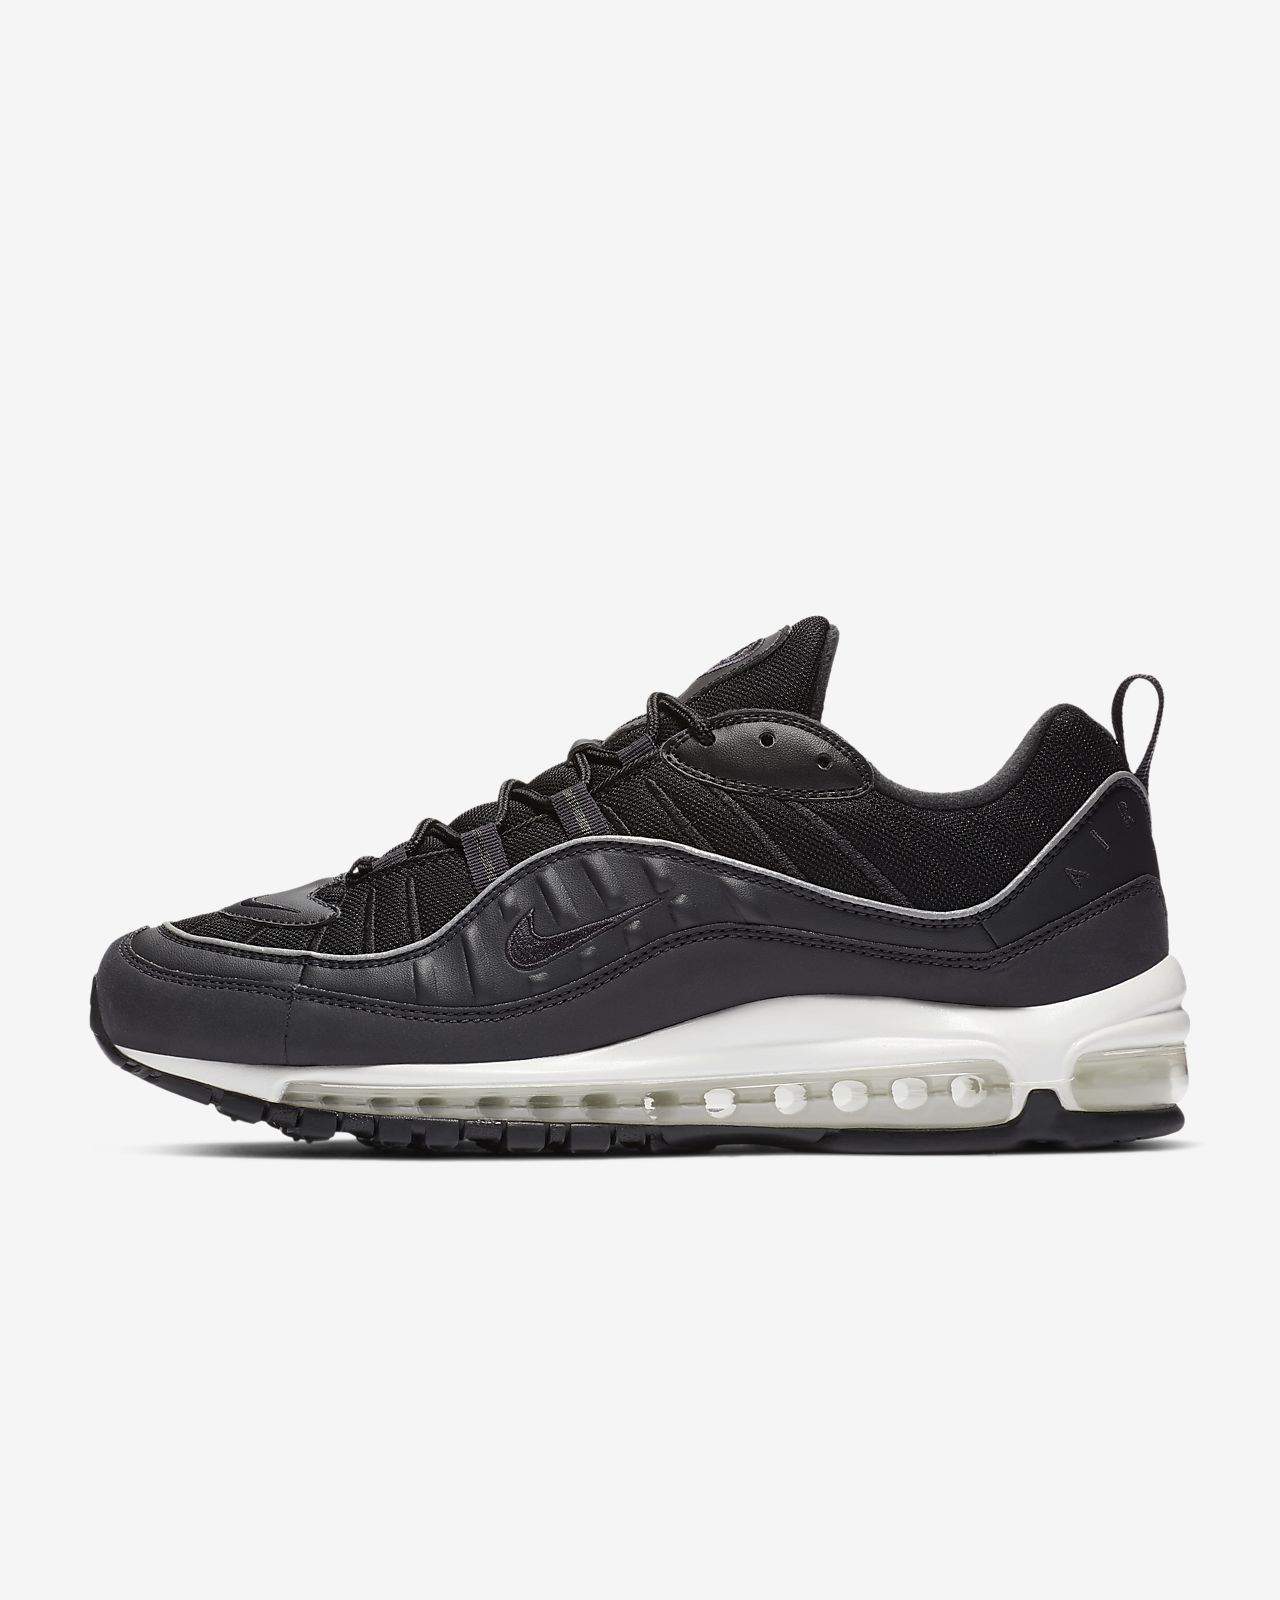 520344f5f8384e Nike Air Max 98 Men s Shoe. Nike.com GB